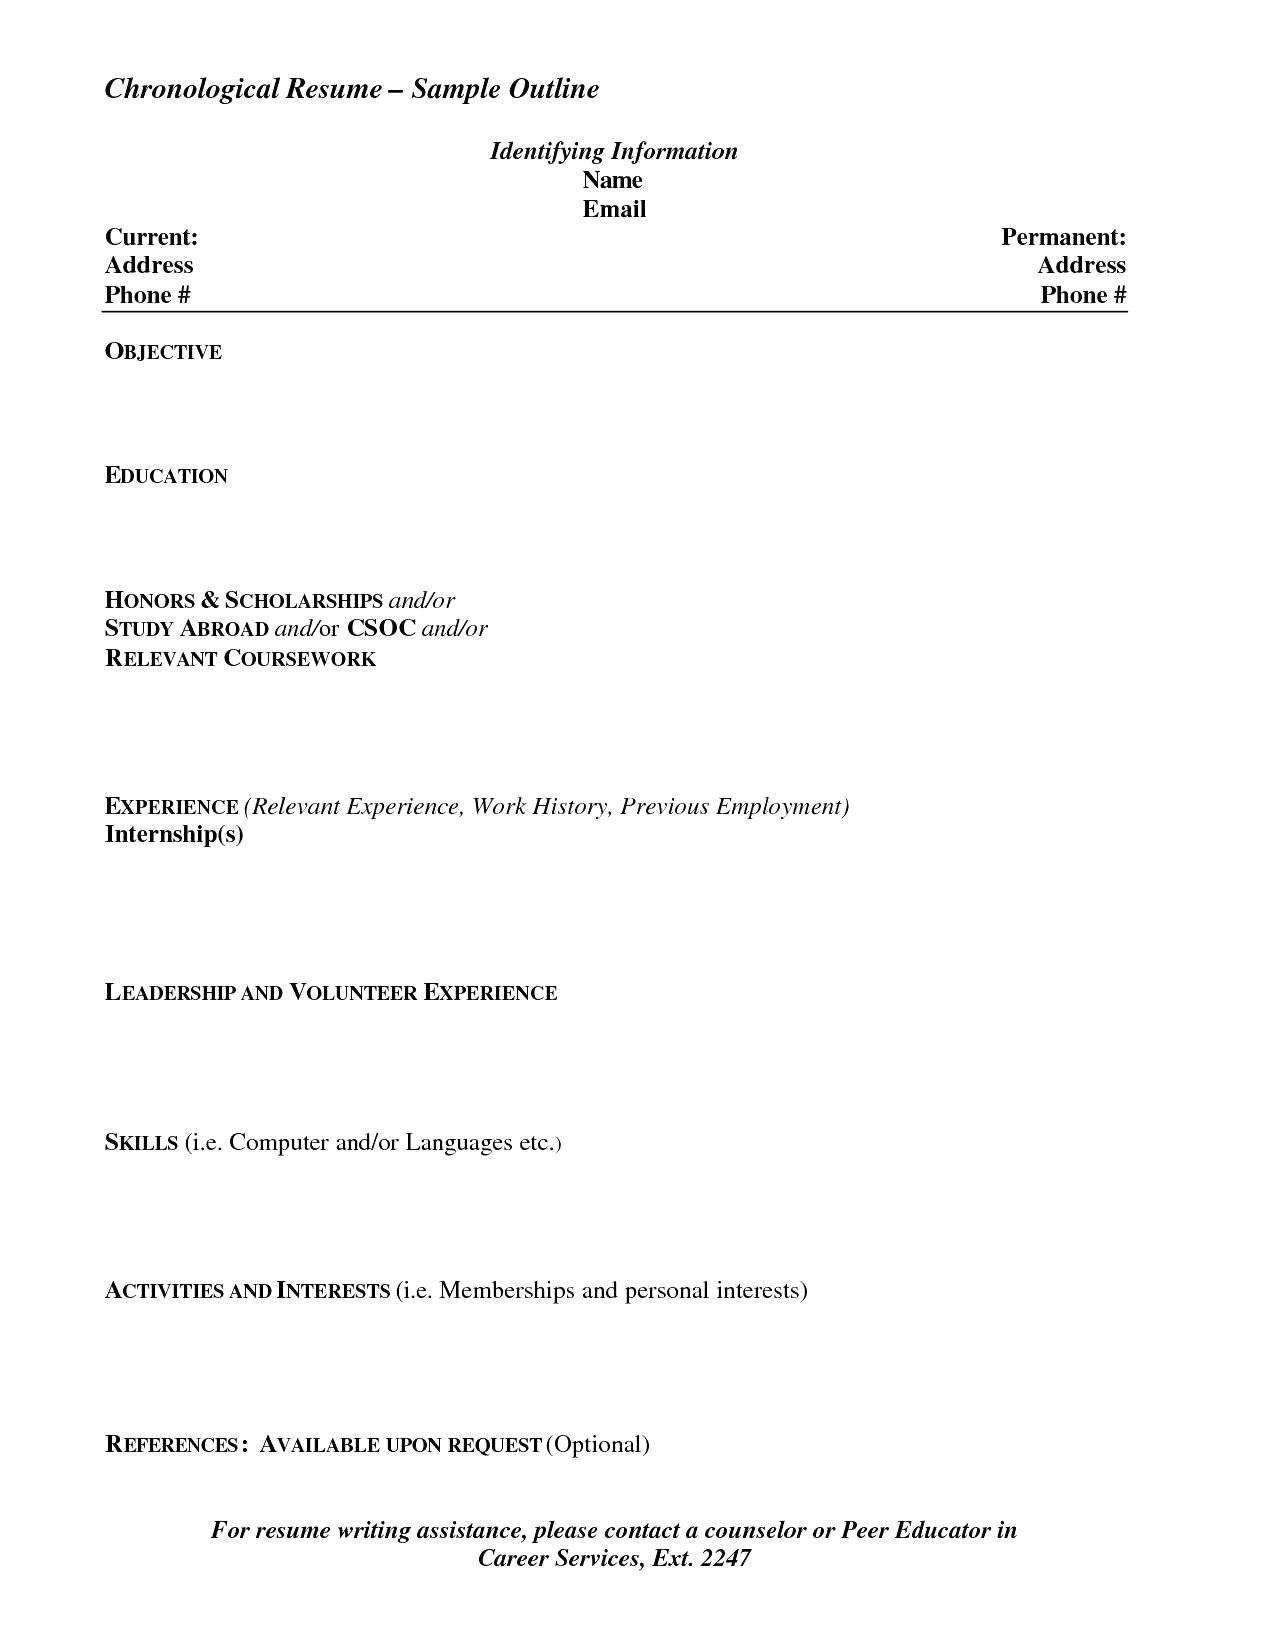 How to List Relevant Coursework on a Resume [10+ Examples]